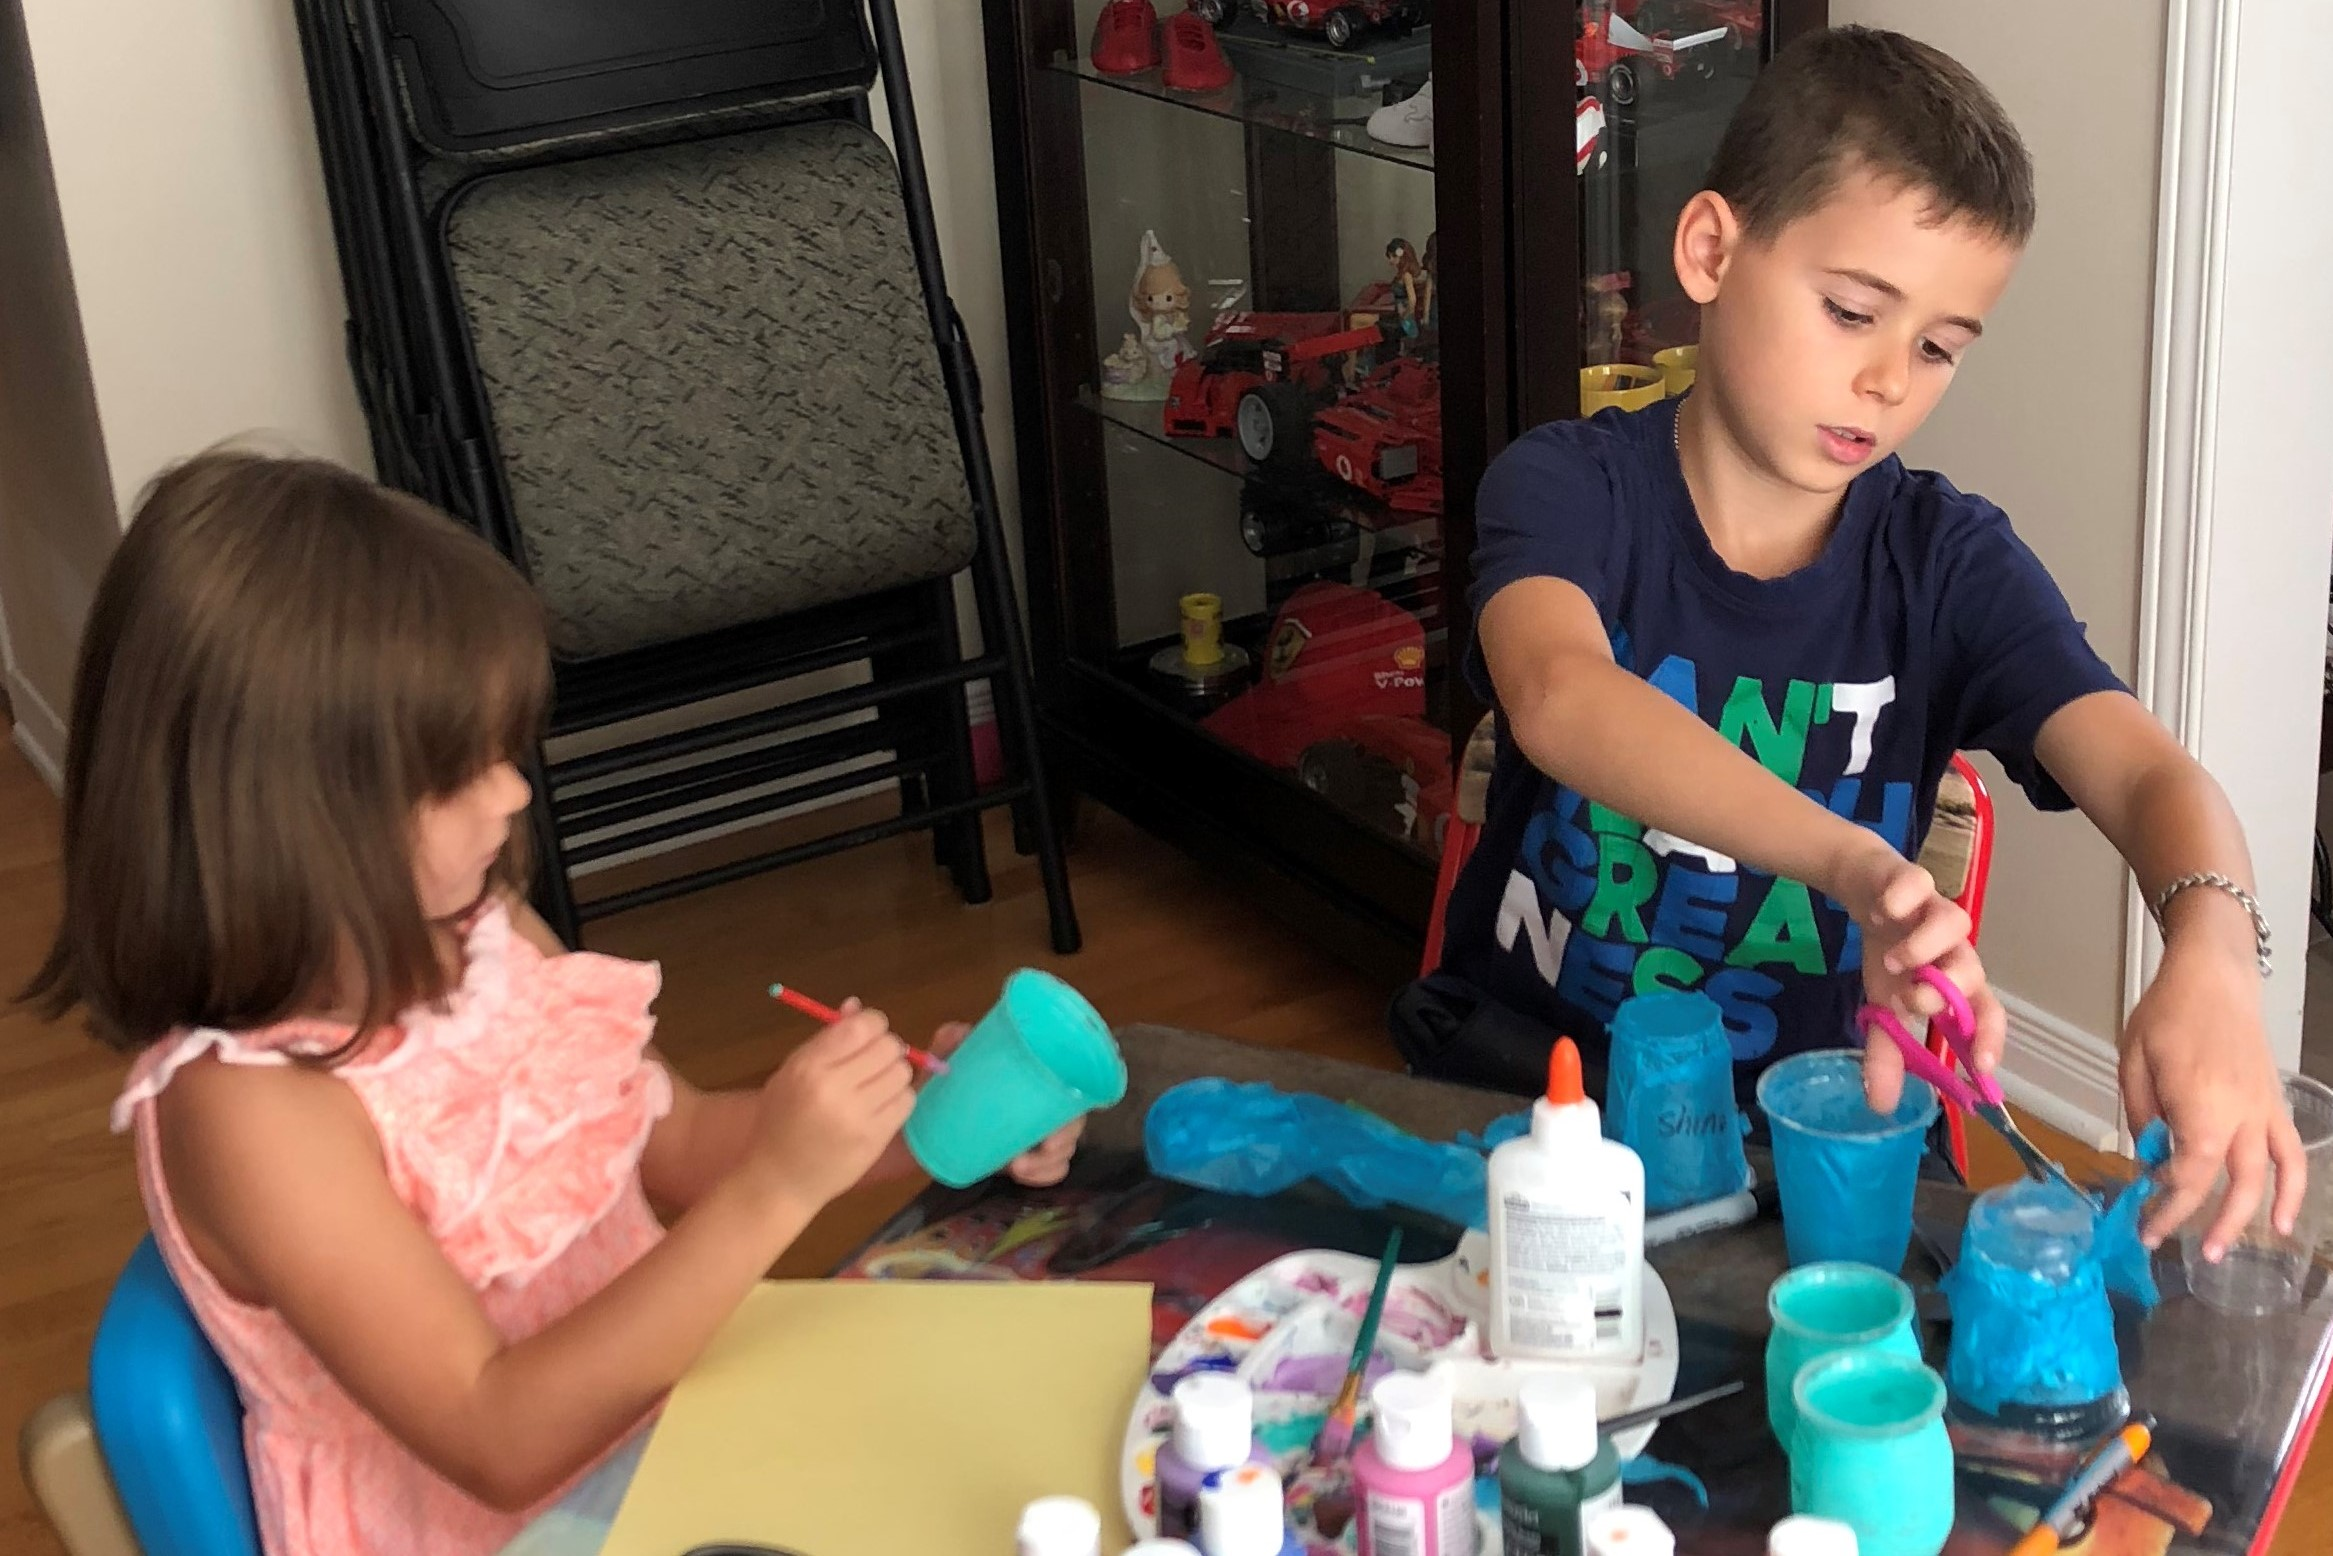 Adriana and Christian D. painting and making teal light crafts